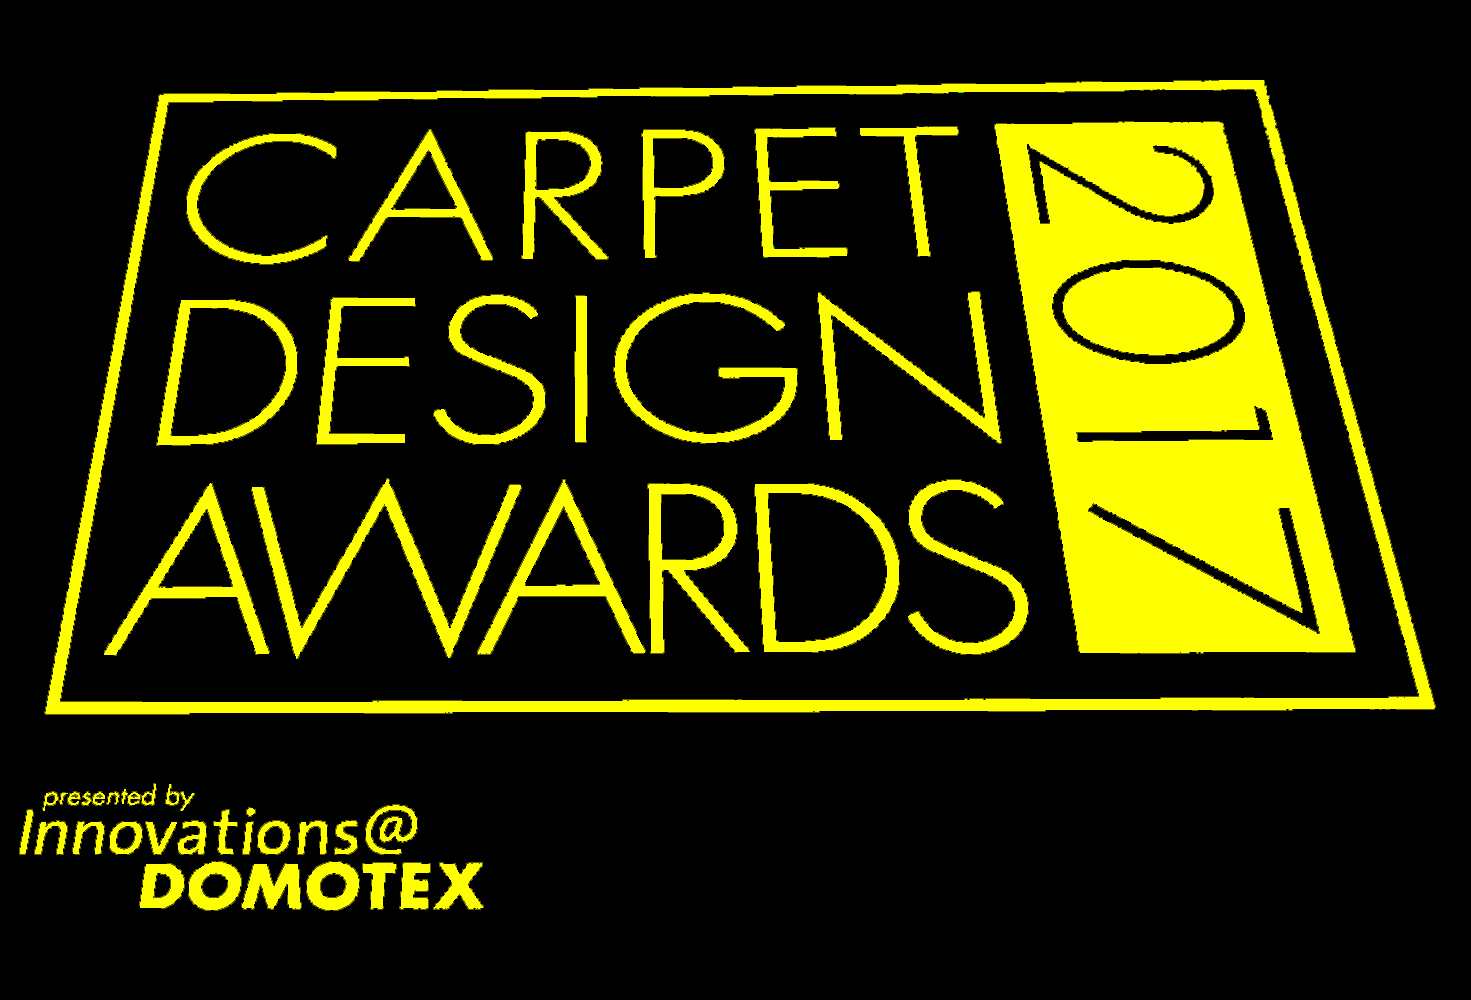 carpet-design-awards-2017.jpg